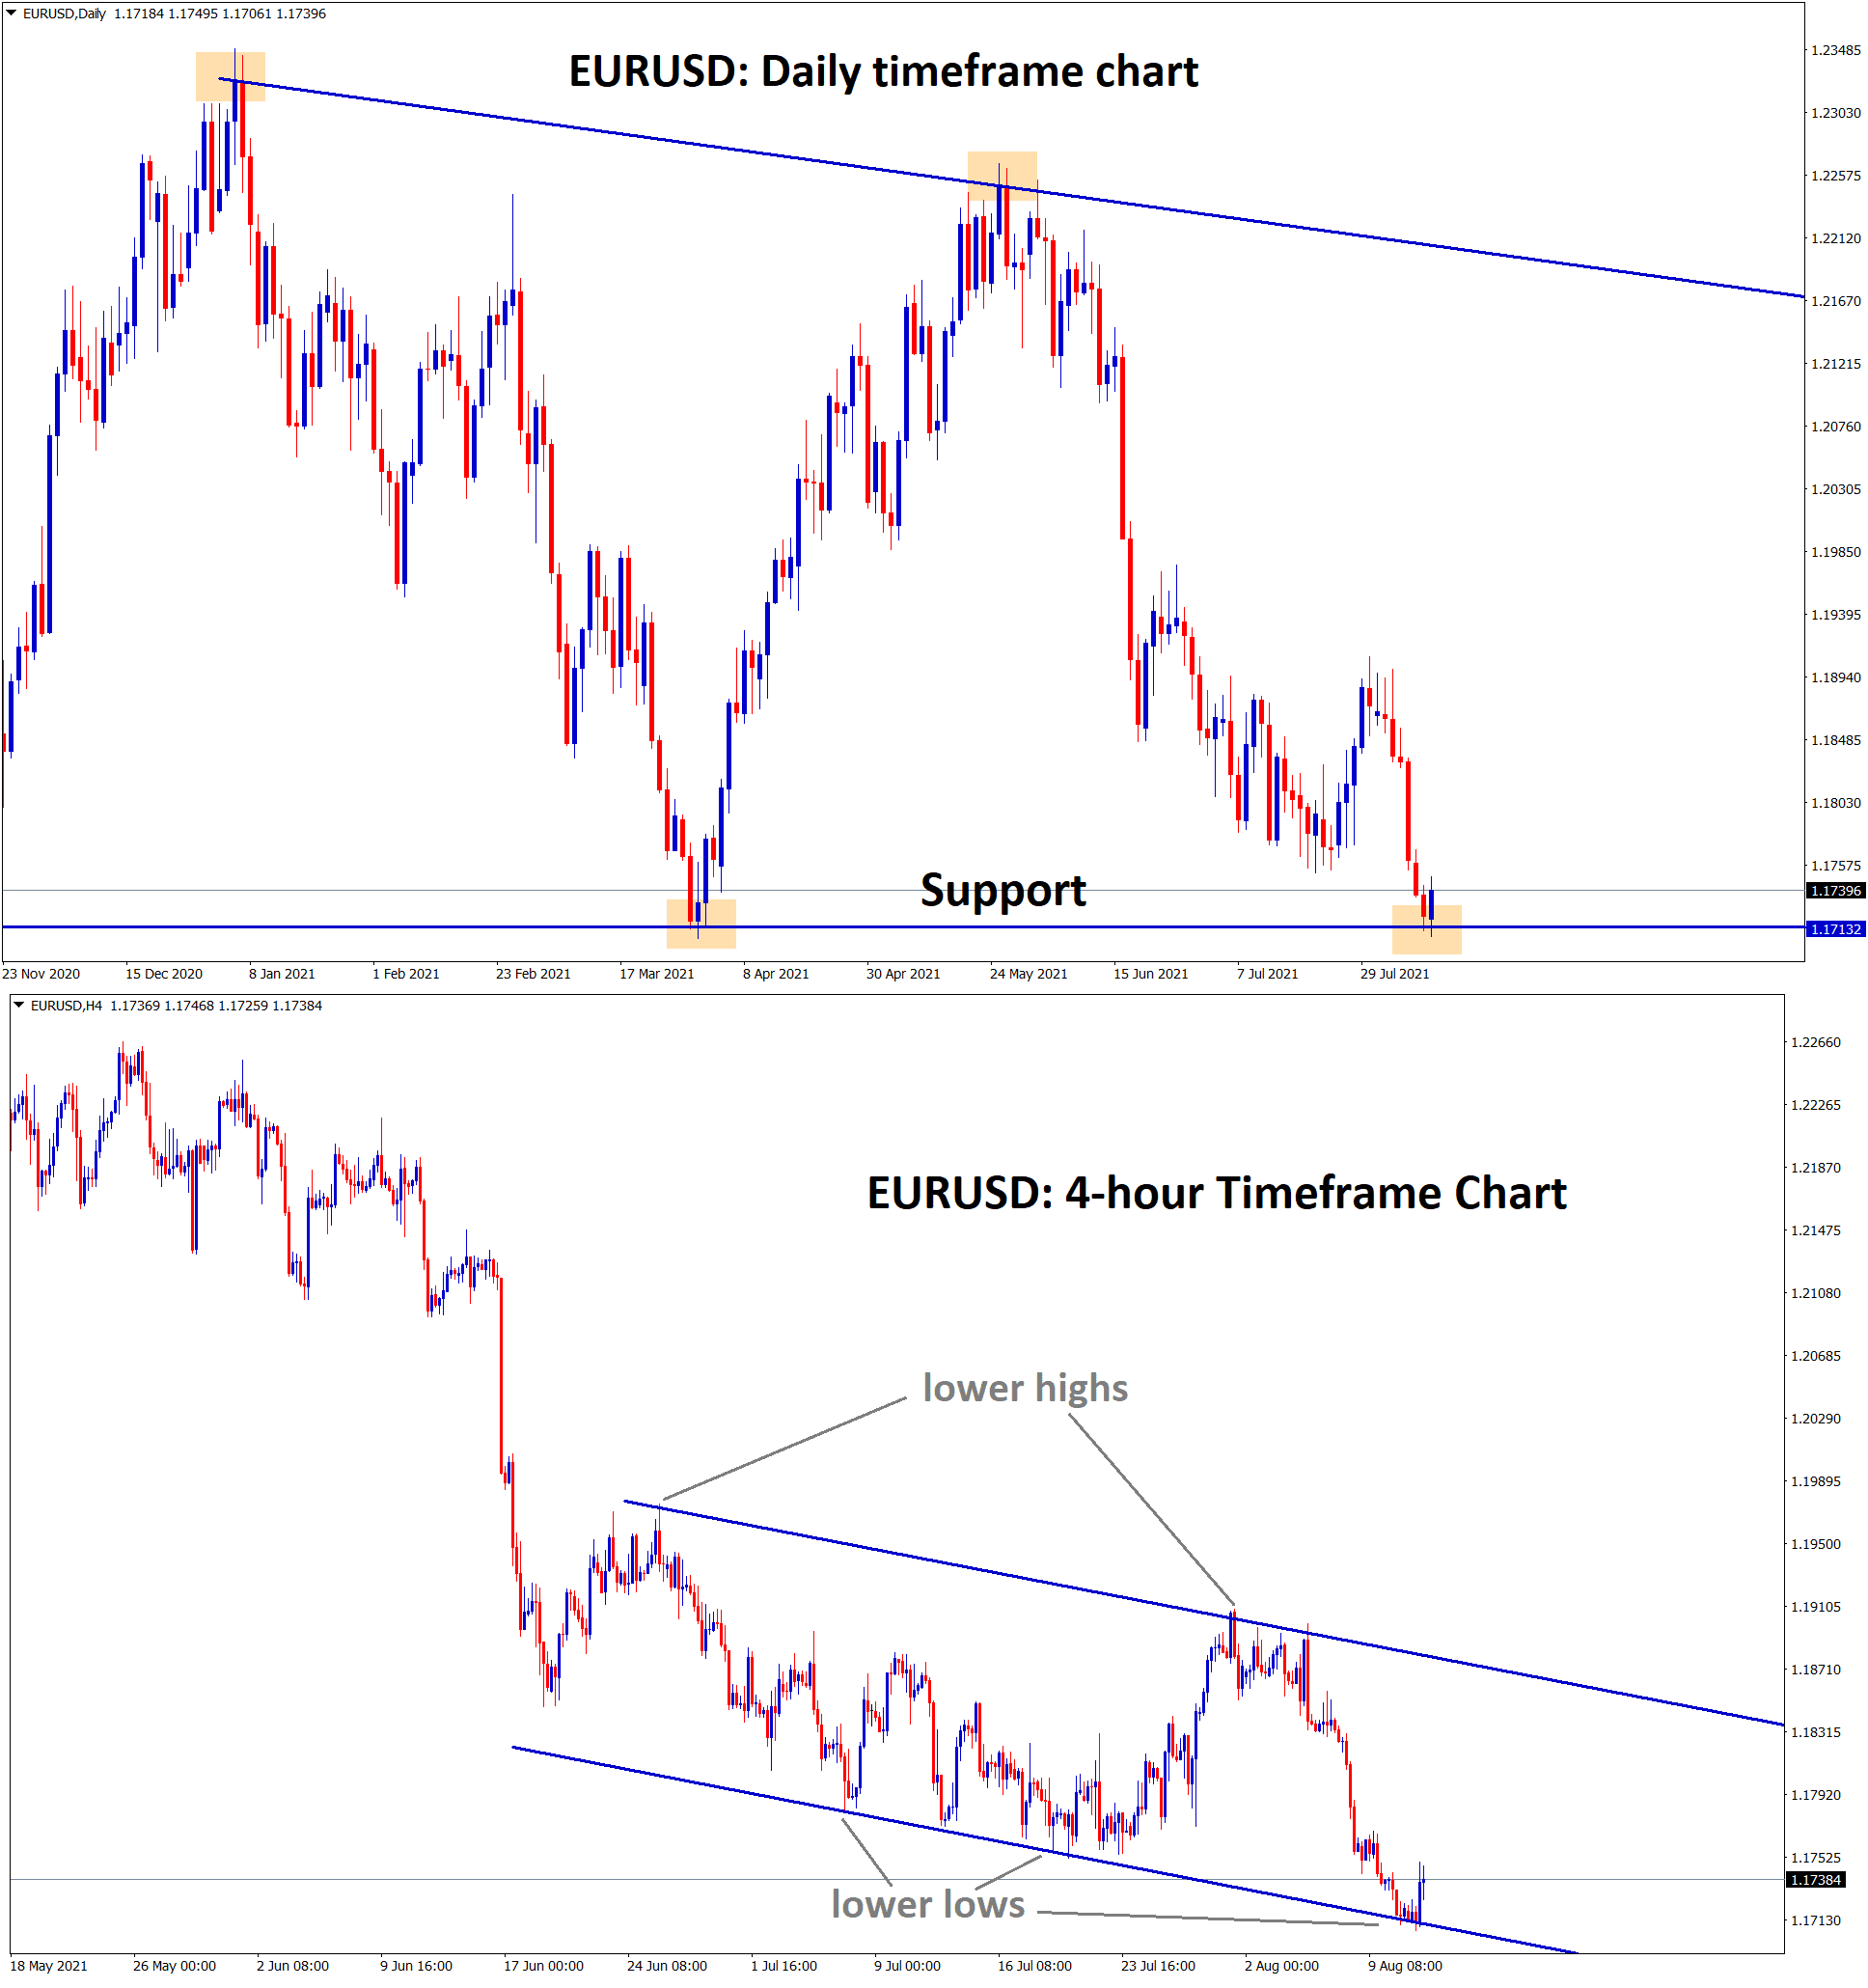 EURUSD is standing at the support zone and bouncing back from the lower low level of the descending channel